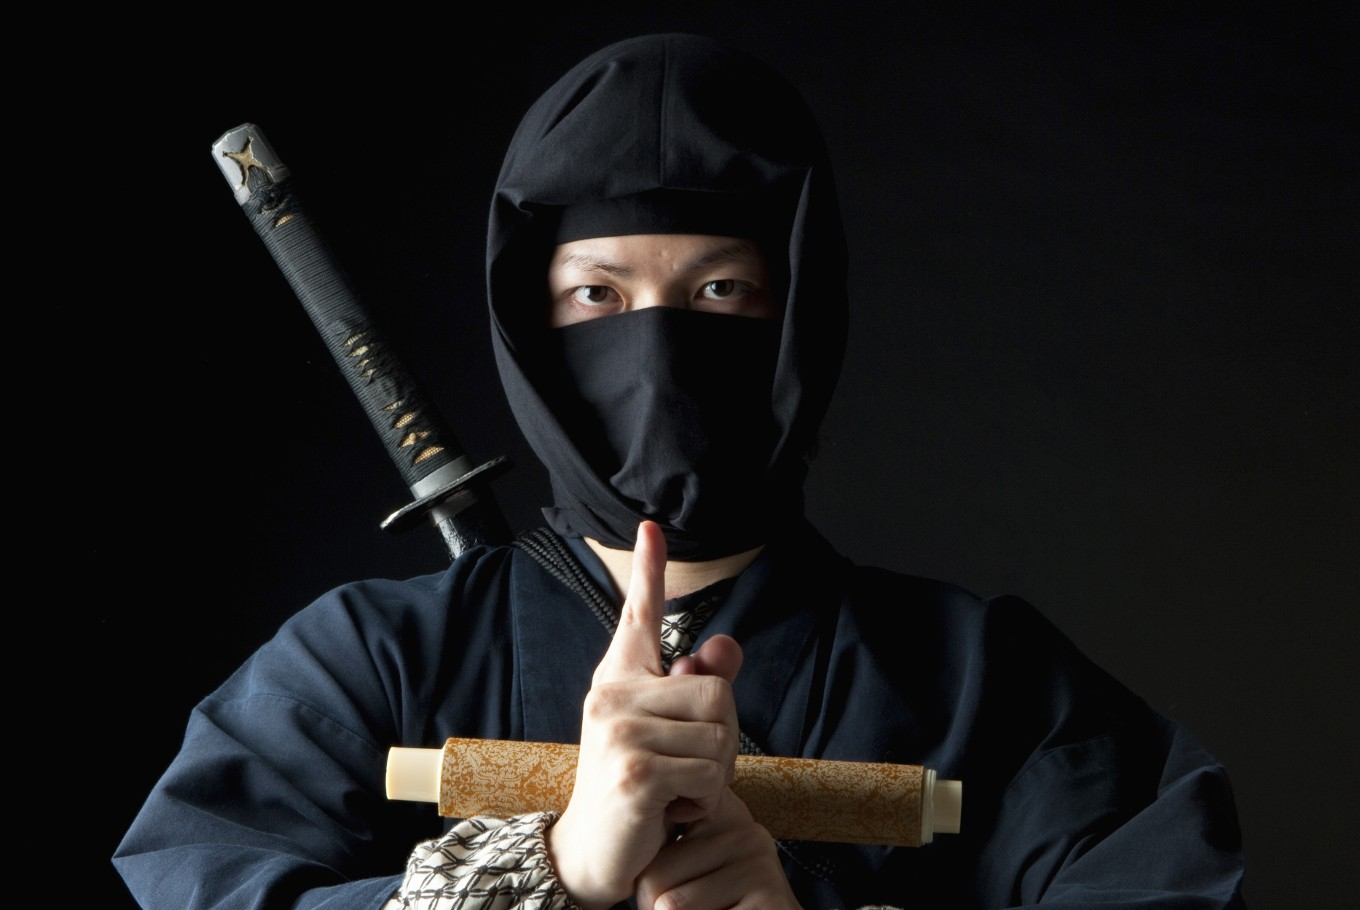 Japanese security firm finds success with ninja-clad guards